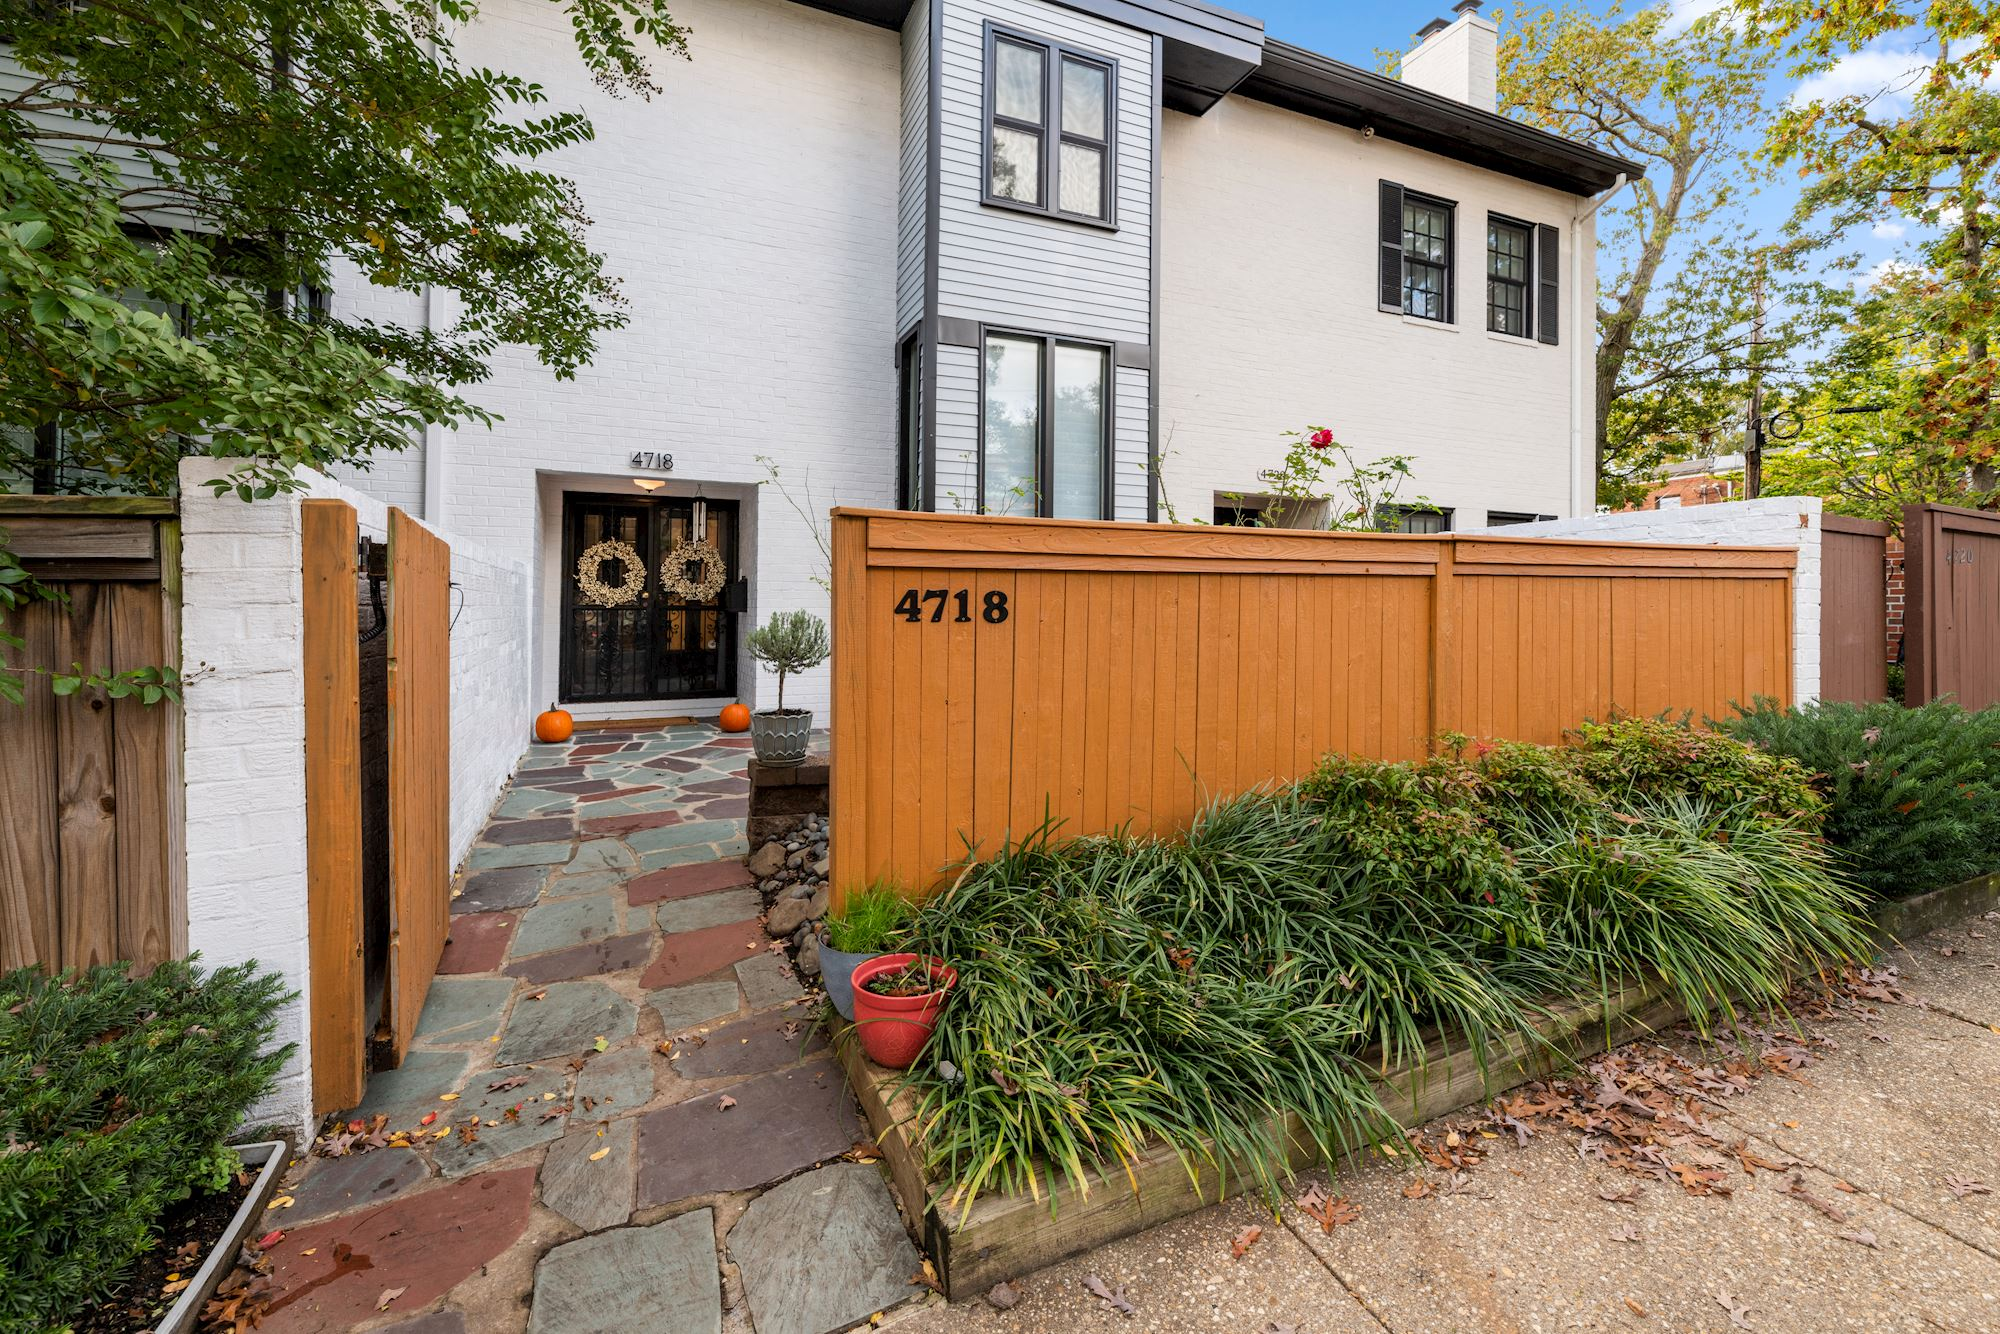 SOLD: Stunning 3 BD Renovated Arlington, VA Townhome